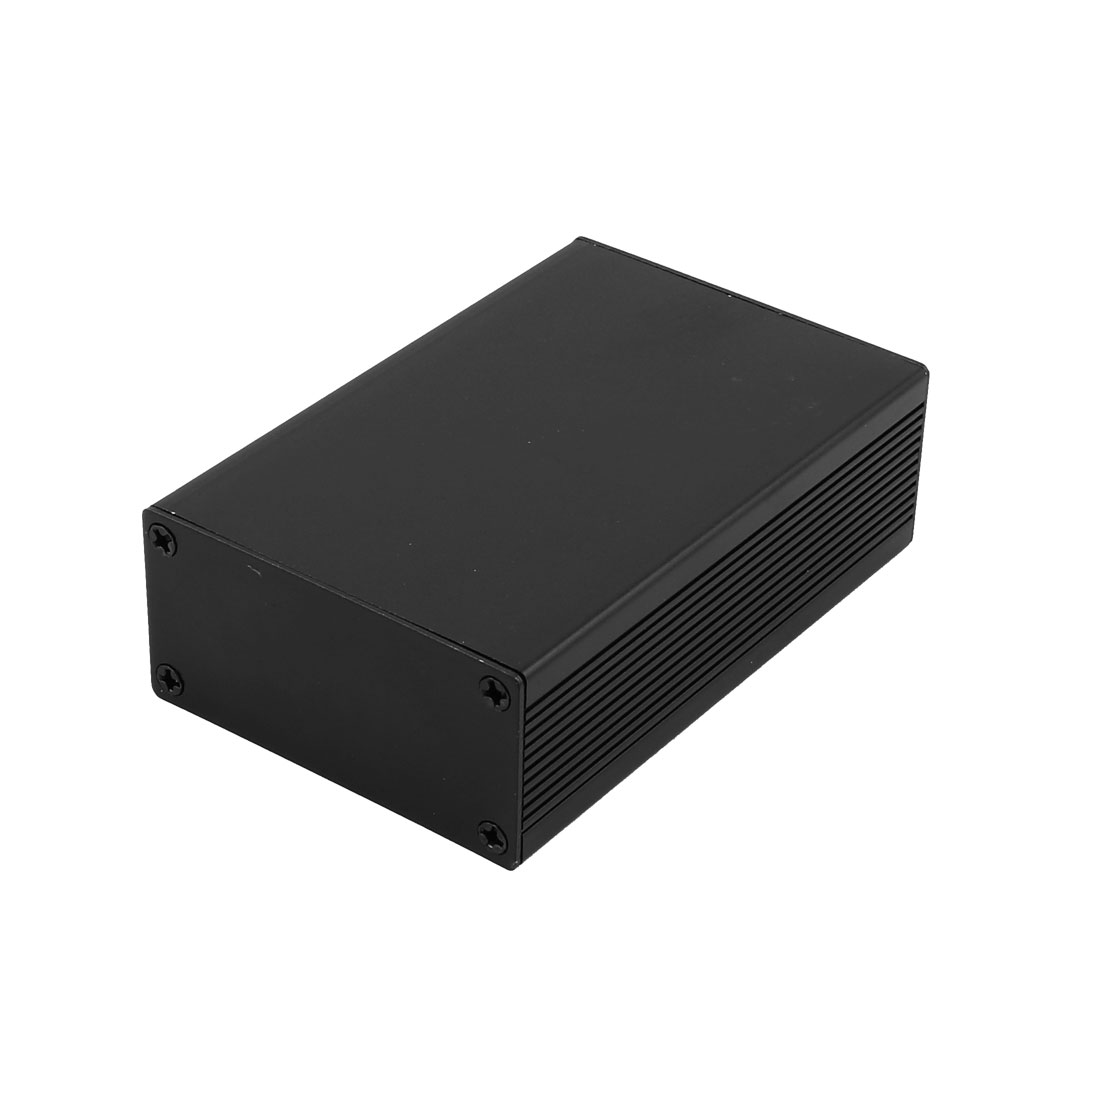 32 x 66 x 100mm Multi-purpose Electronic Extruded Aluminum Enclosure Black